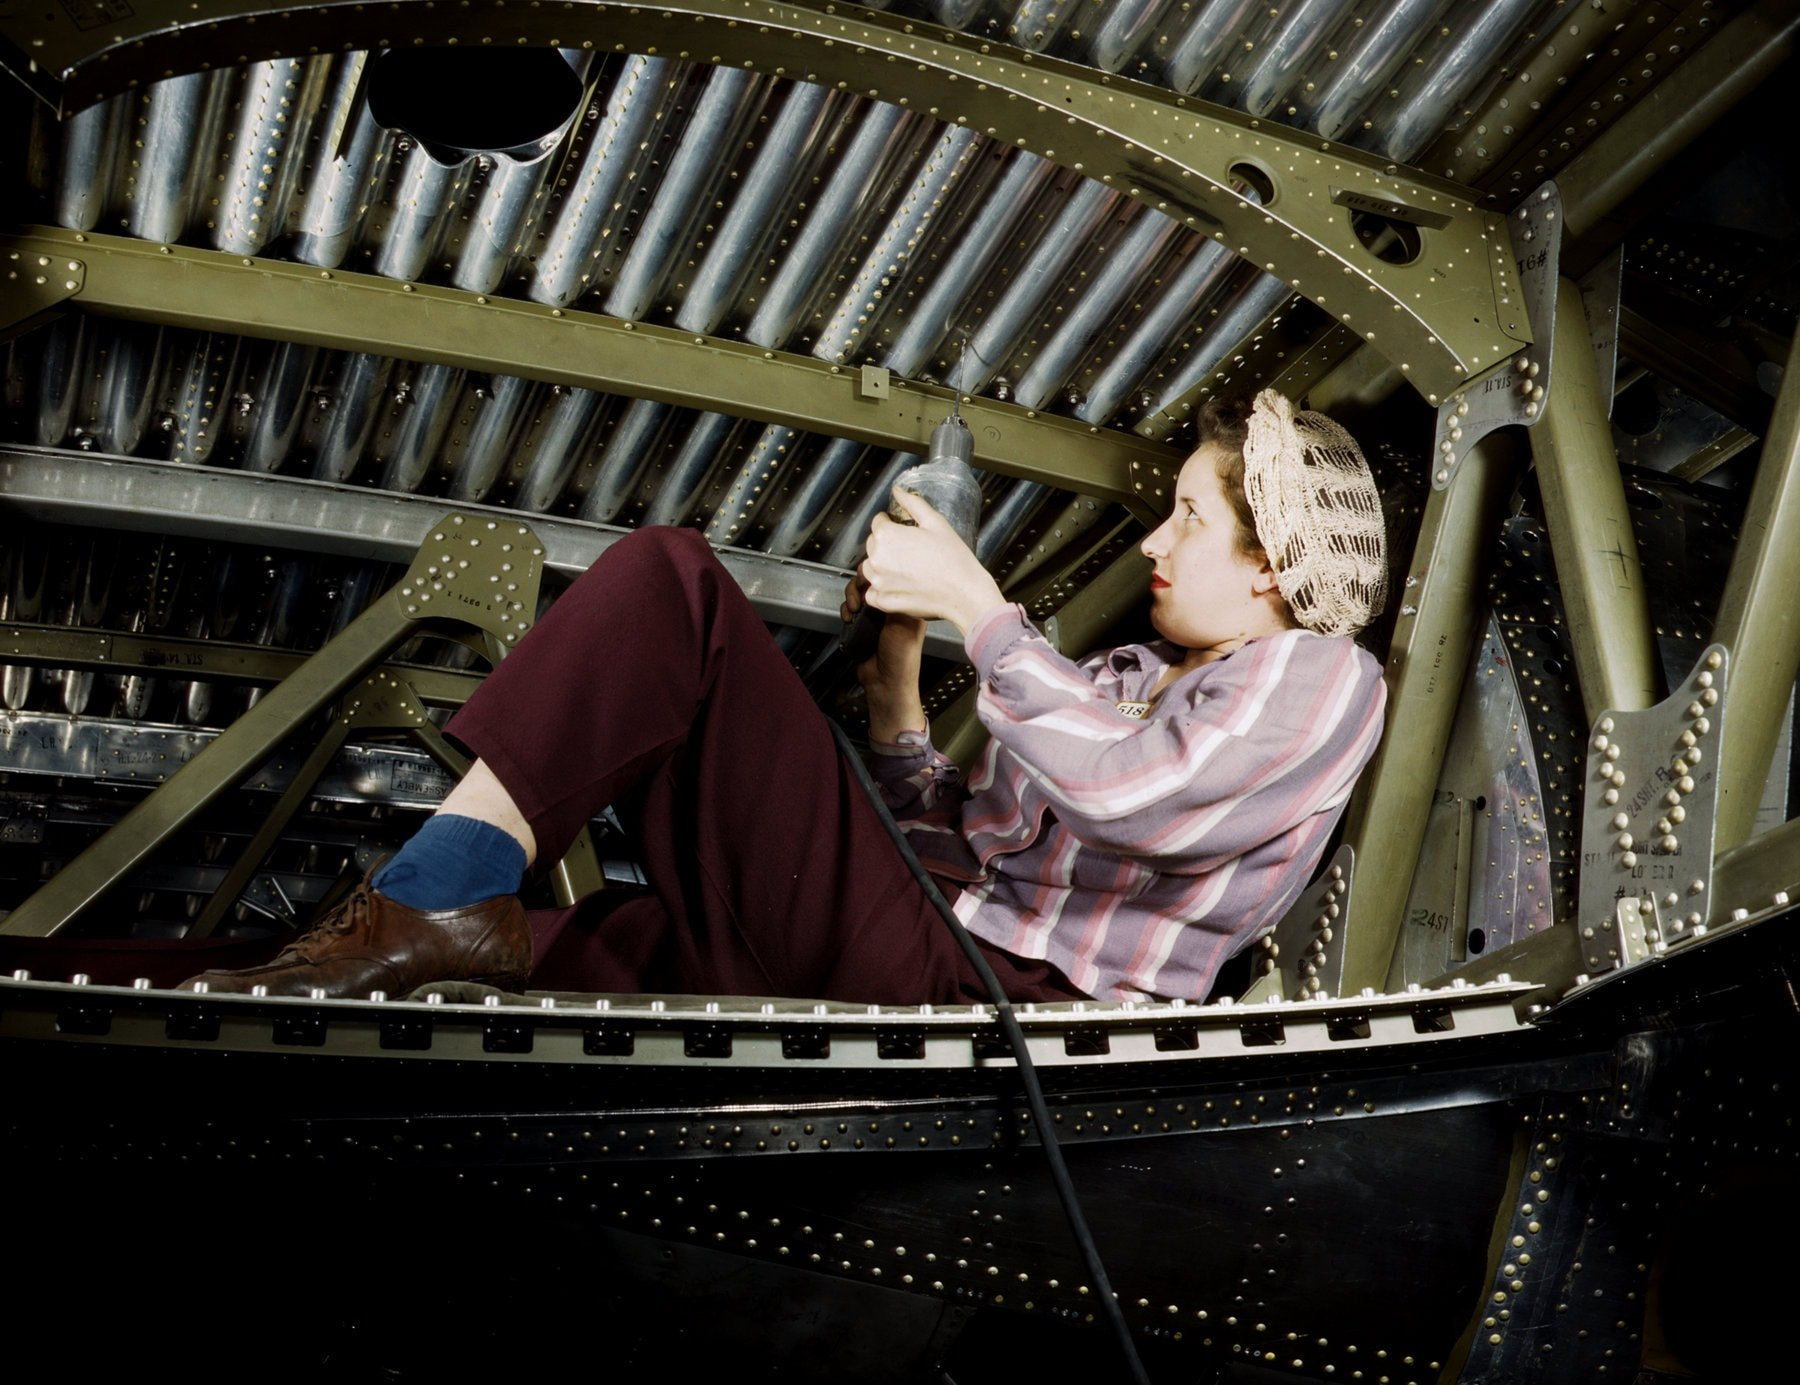 Riveting a A-20 bomber